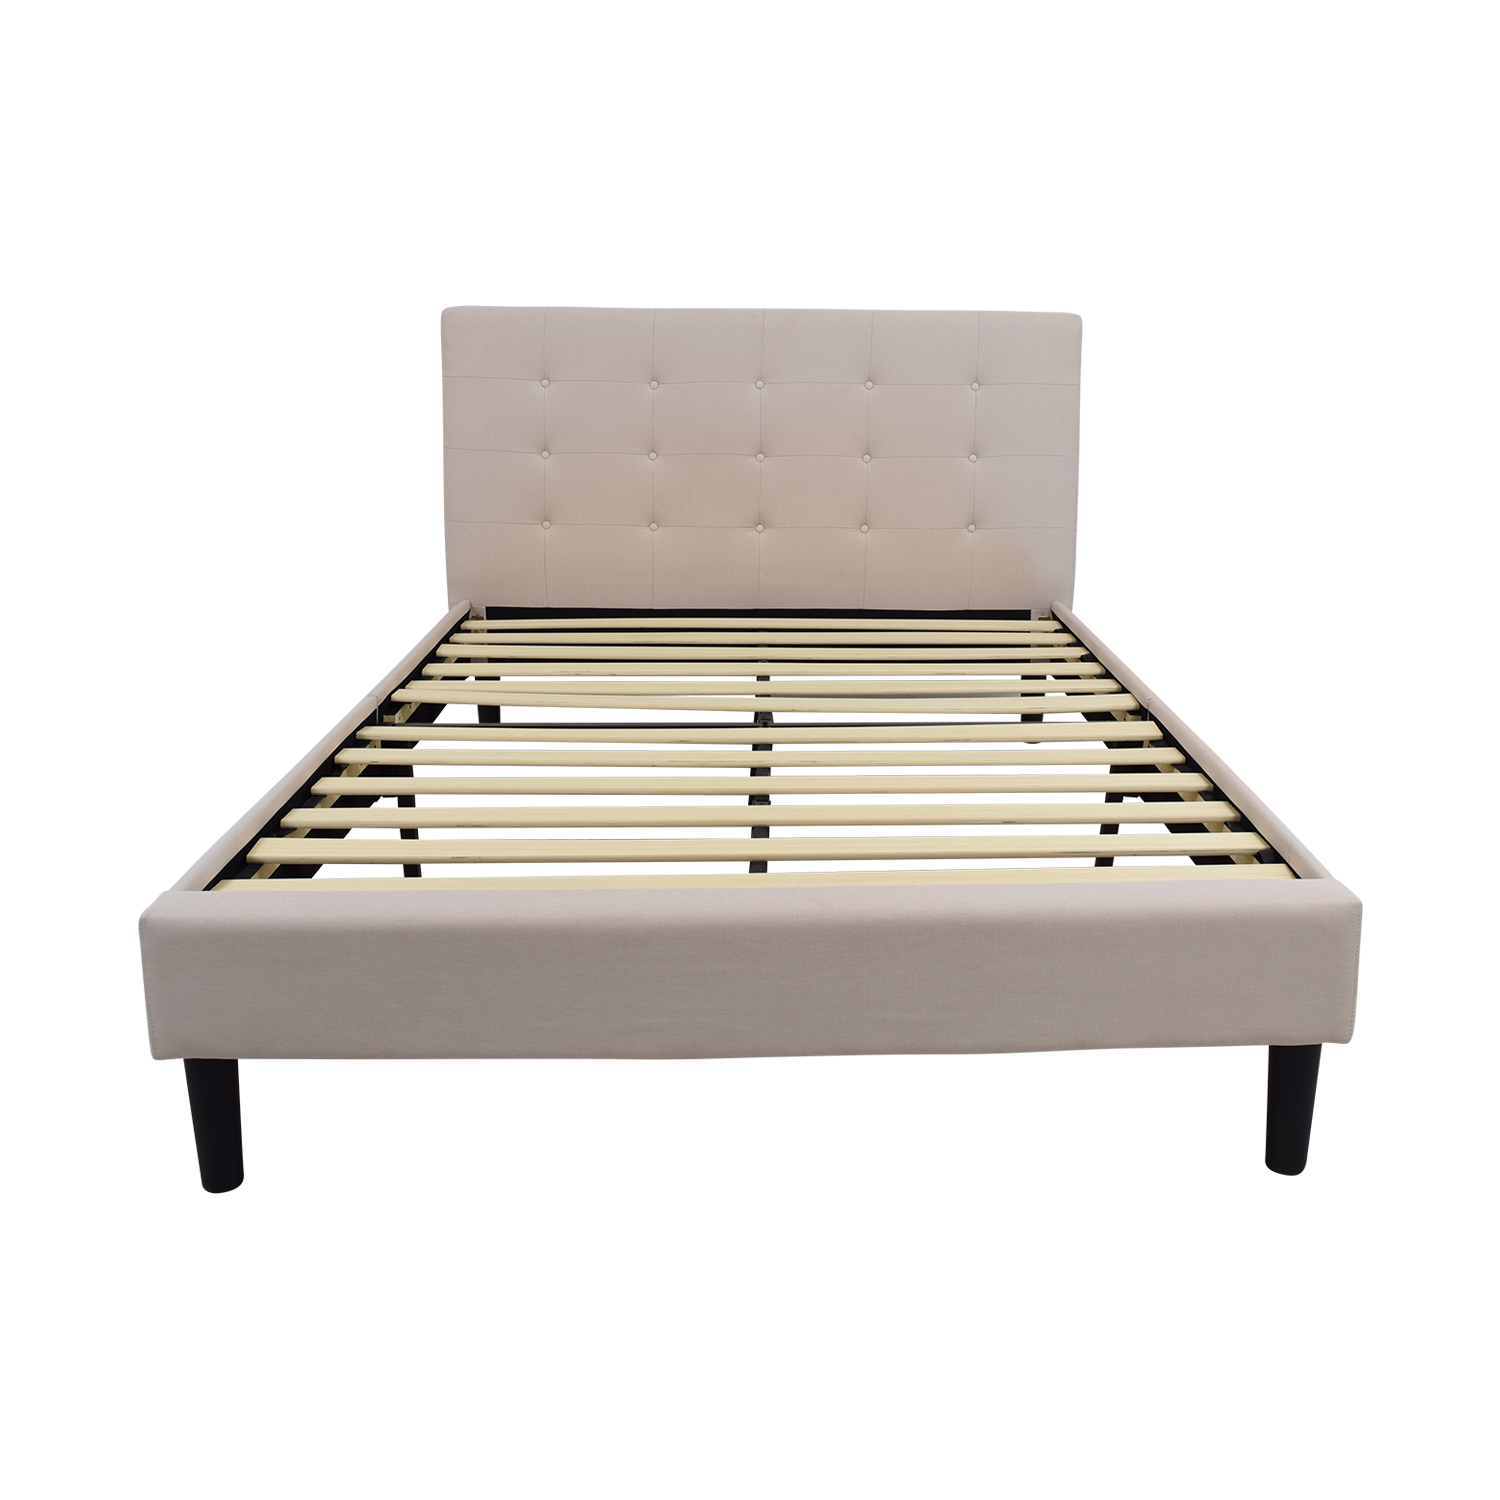 54% OFF - Beige Tufted Queen Bed Frame / Beds